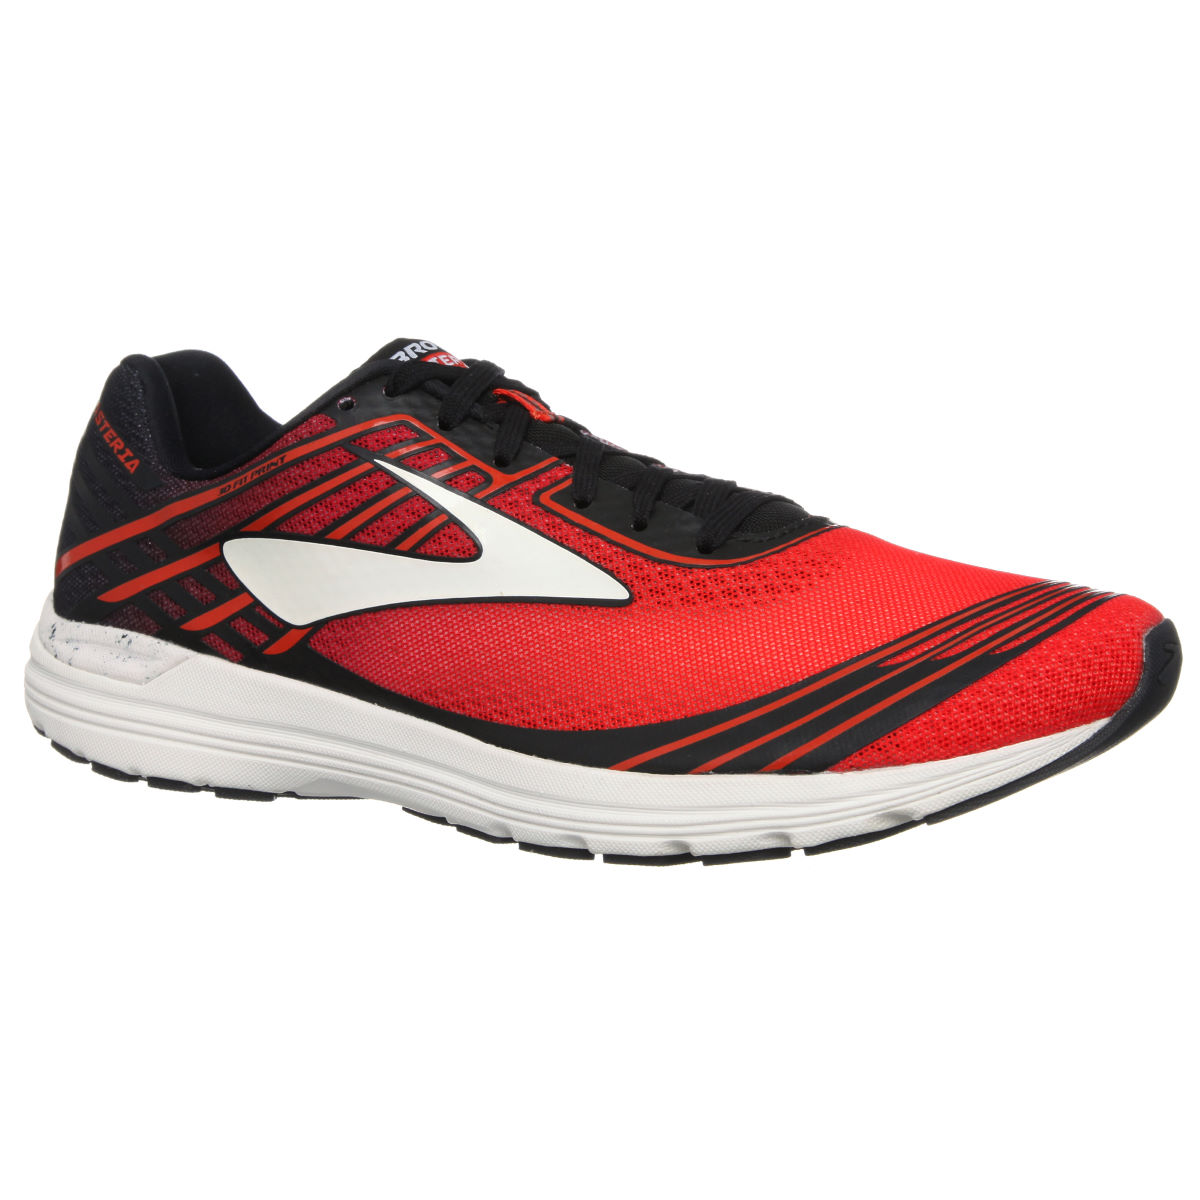 Chaussures Brooks Asteria - UK 7 Rouge/Noir